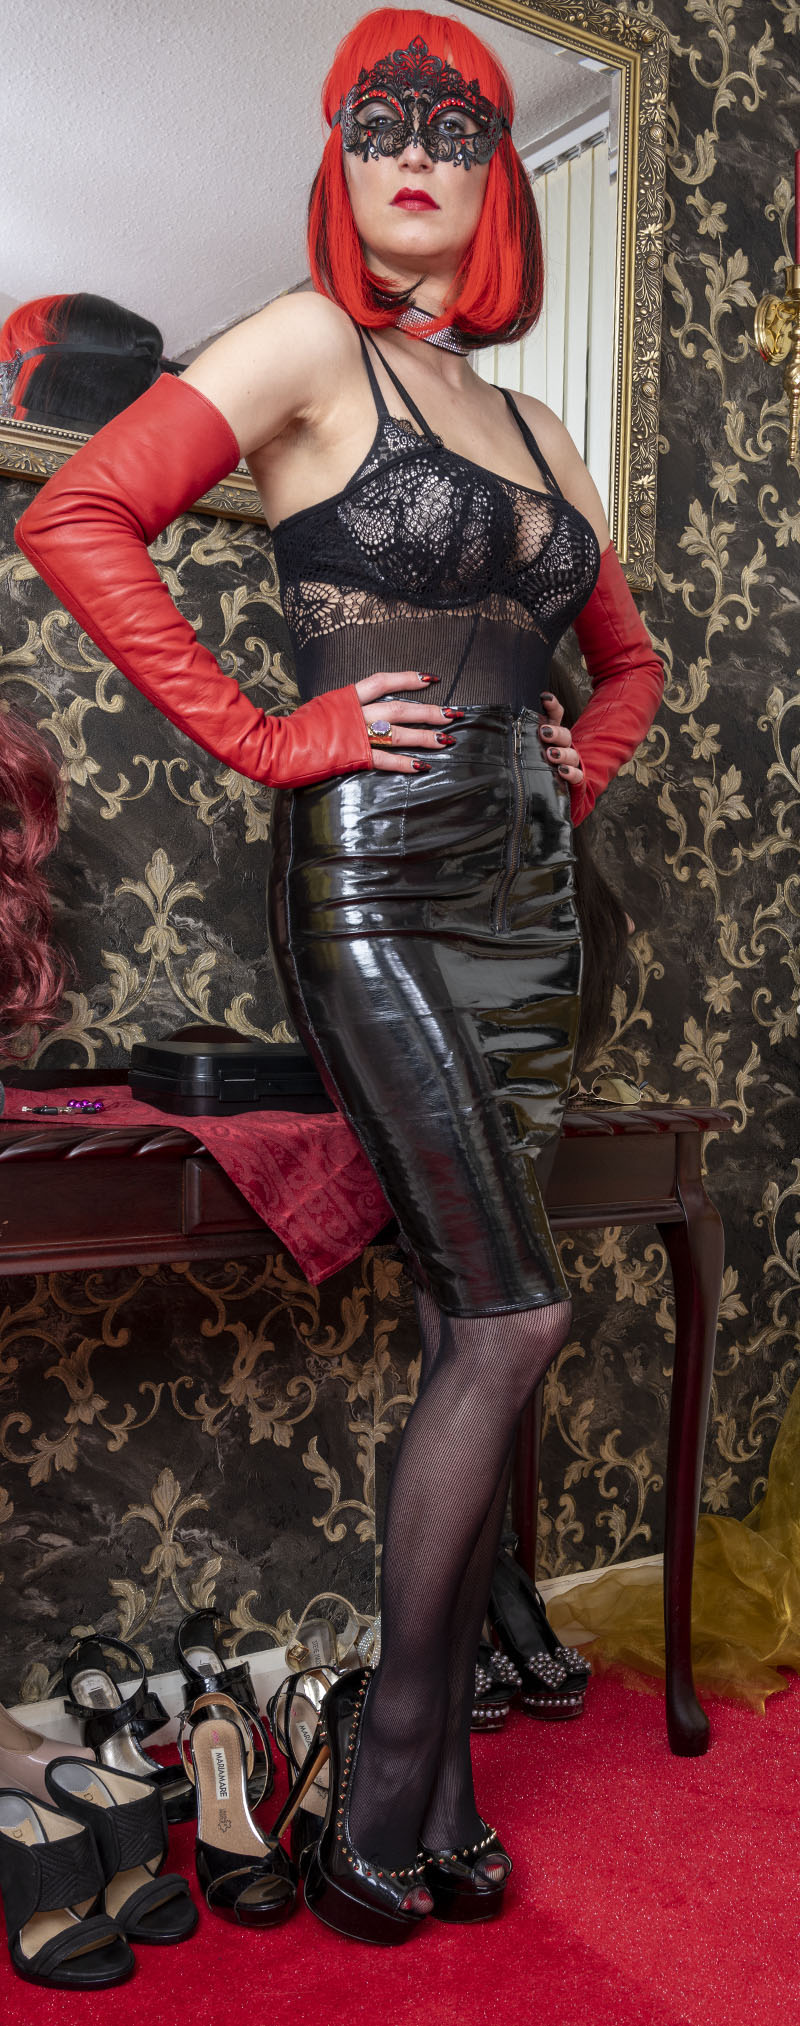 west-midlands-mistress_2428